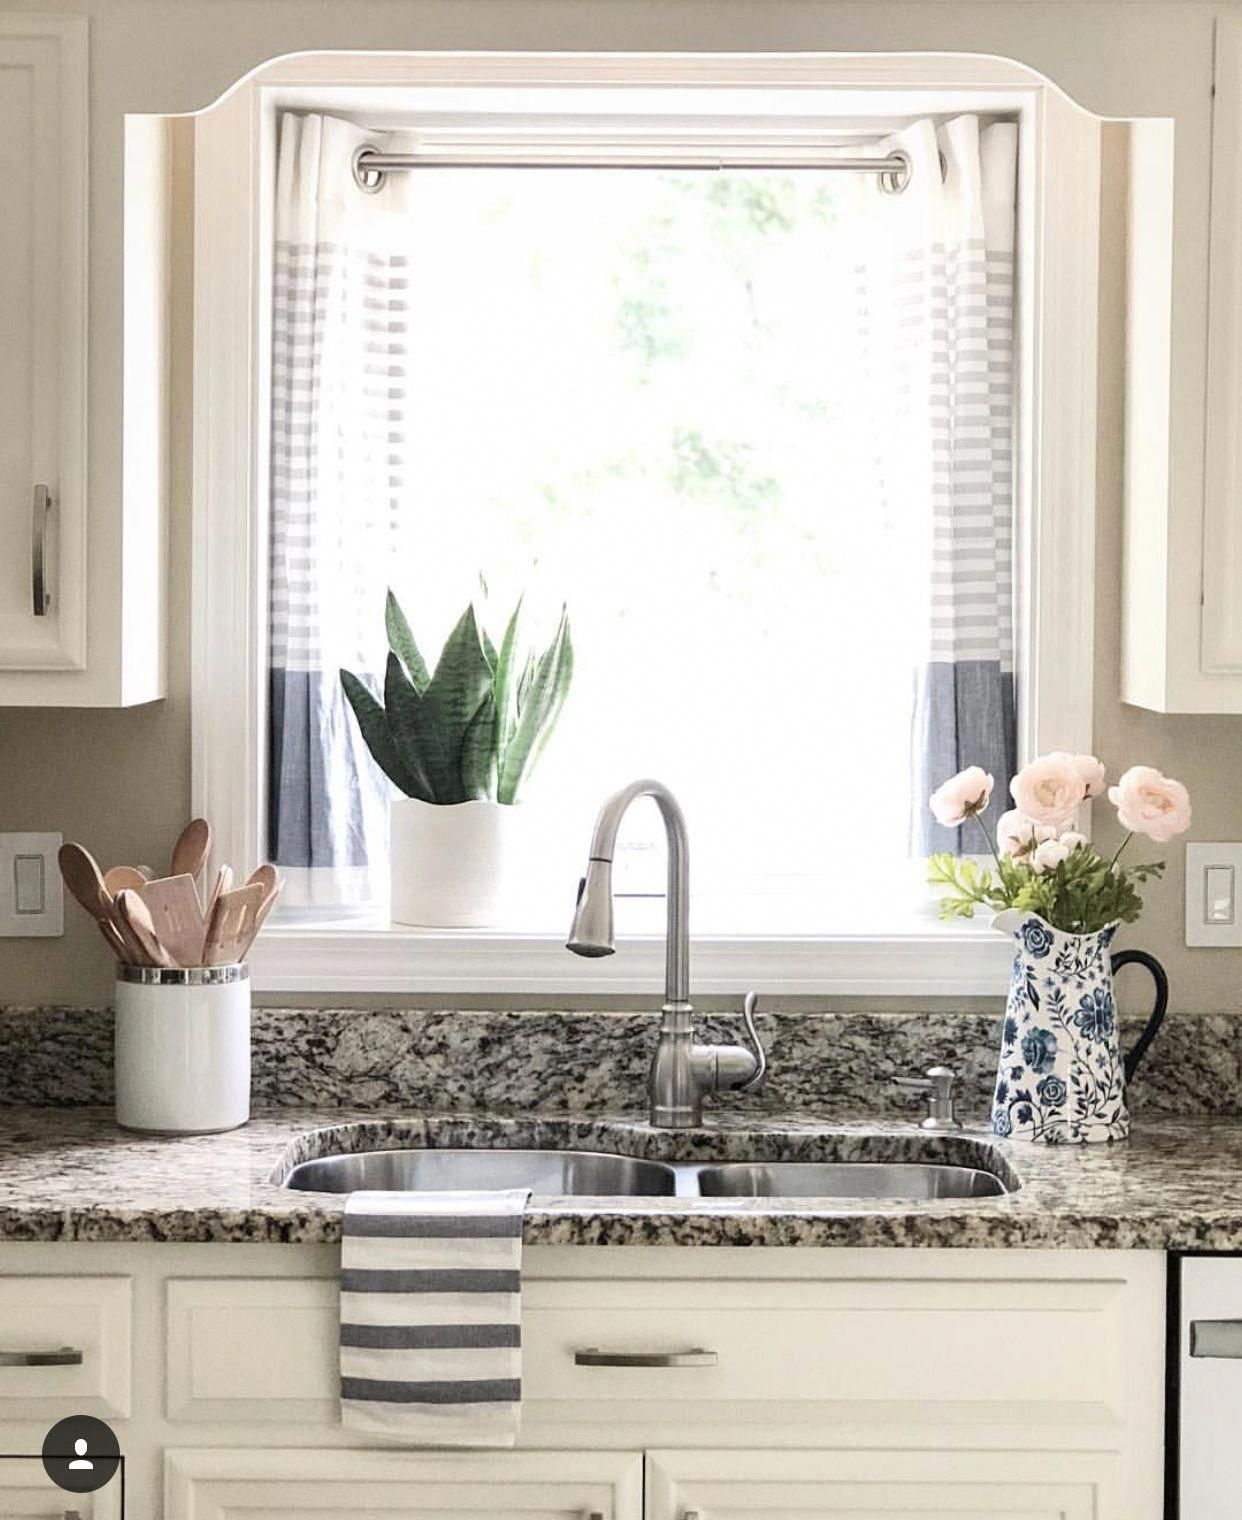 Window Treatments Interiordesign: Kitchen Updated With Awning Window And Added A Small Bump